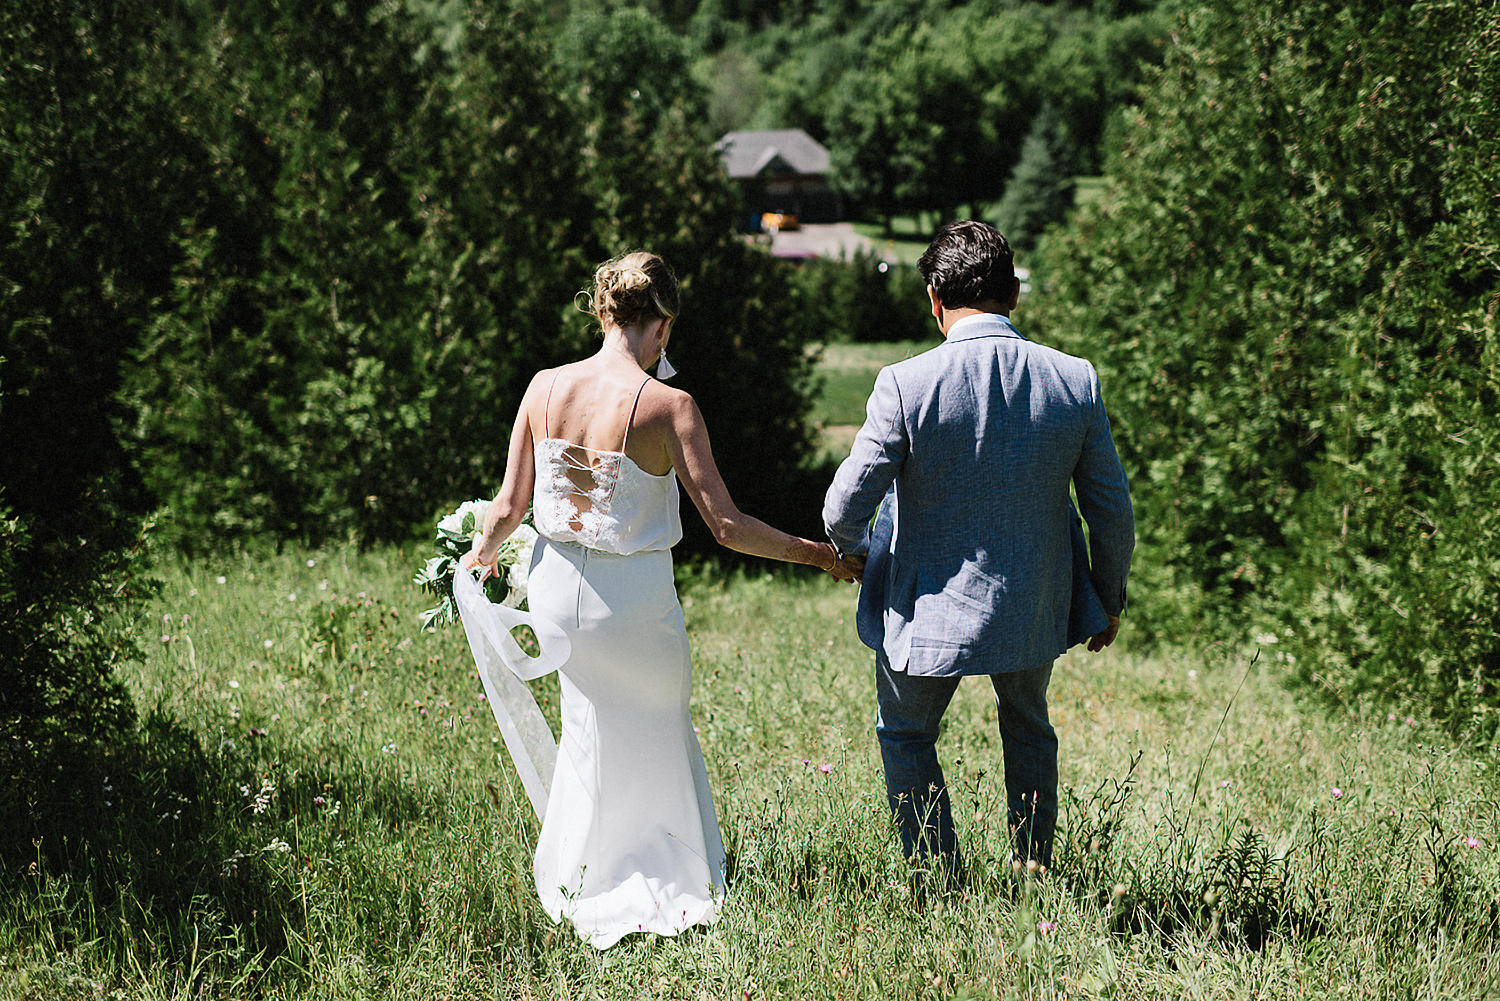 Outdoor-CeremonyIdeas-Bride-and-Groom-Exit-Toronto-Vintage-Bride-Outdoor-Forest-Wedding-Venue-High-Park-Downtown-Toronto_Candid-Editorial-Documentary-Wedding-Photographers-Sweet-Candid-Moment-Between-Groom--and-Bride-Shoes-Details.jpg